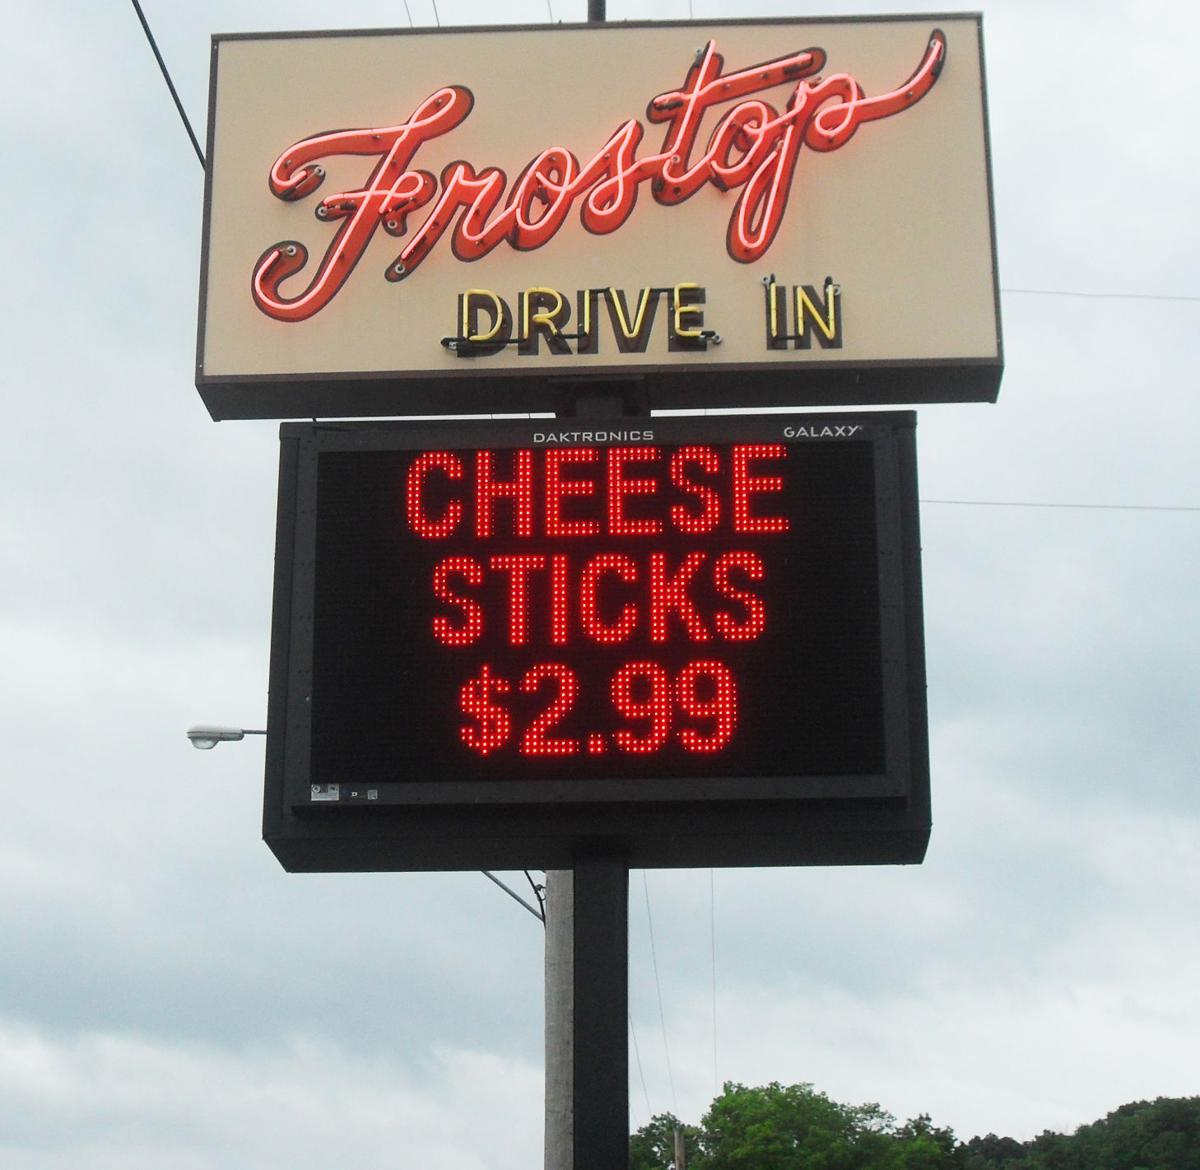 The Frostop sign today